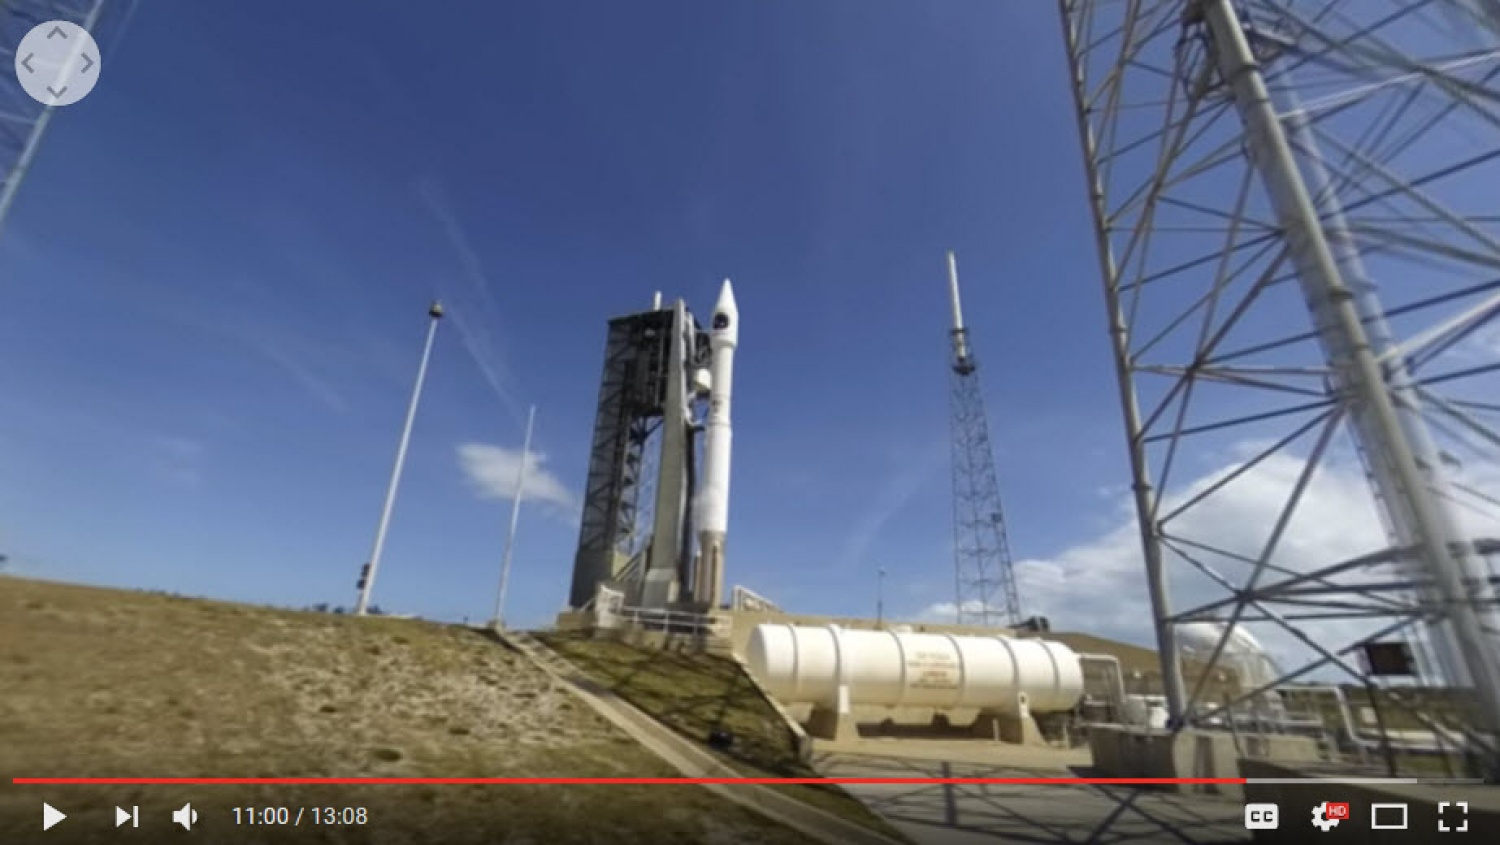 Watch a replay of the world`s first live 360 rocket launch